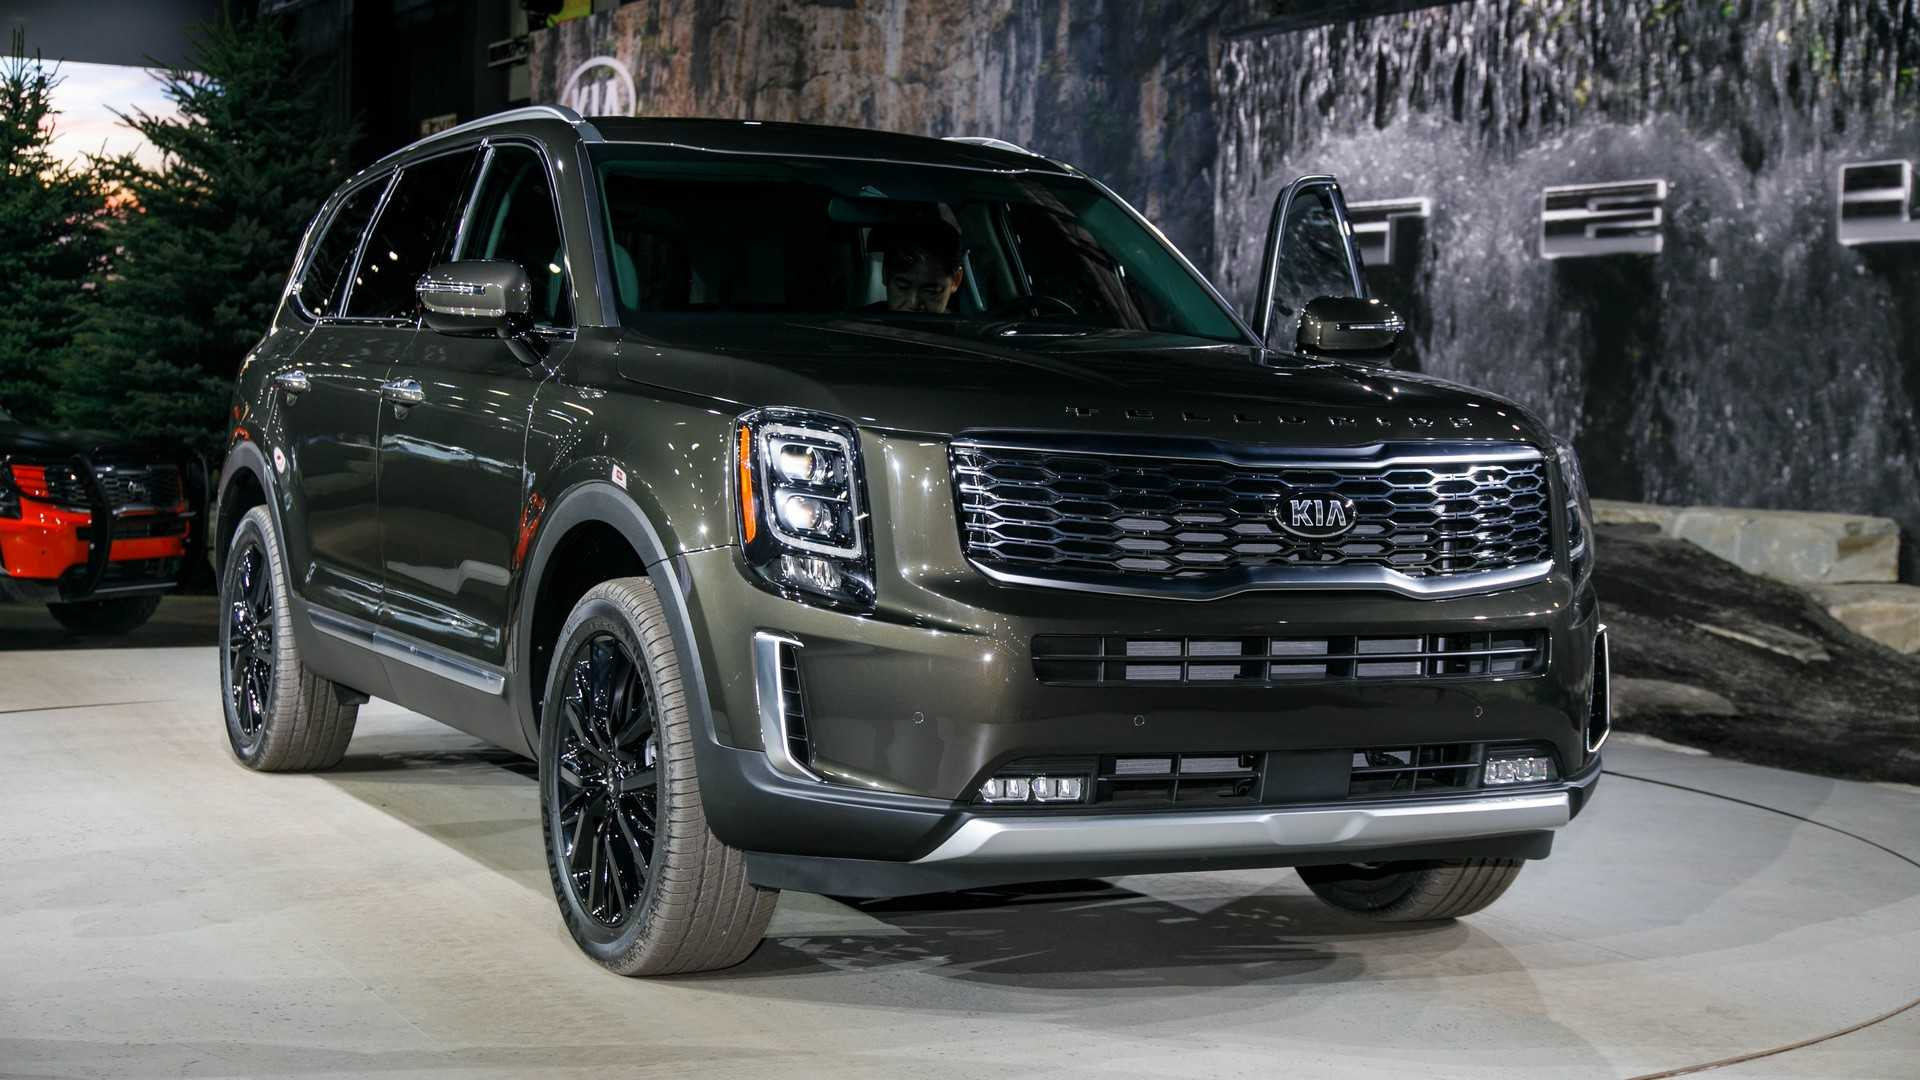 95 The Kia Telluride 2020 History for Kia Telluride 2020